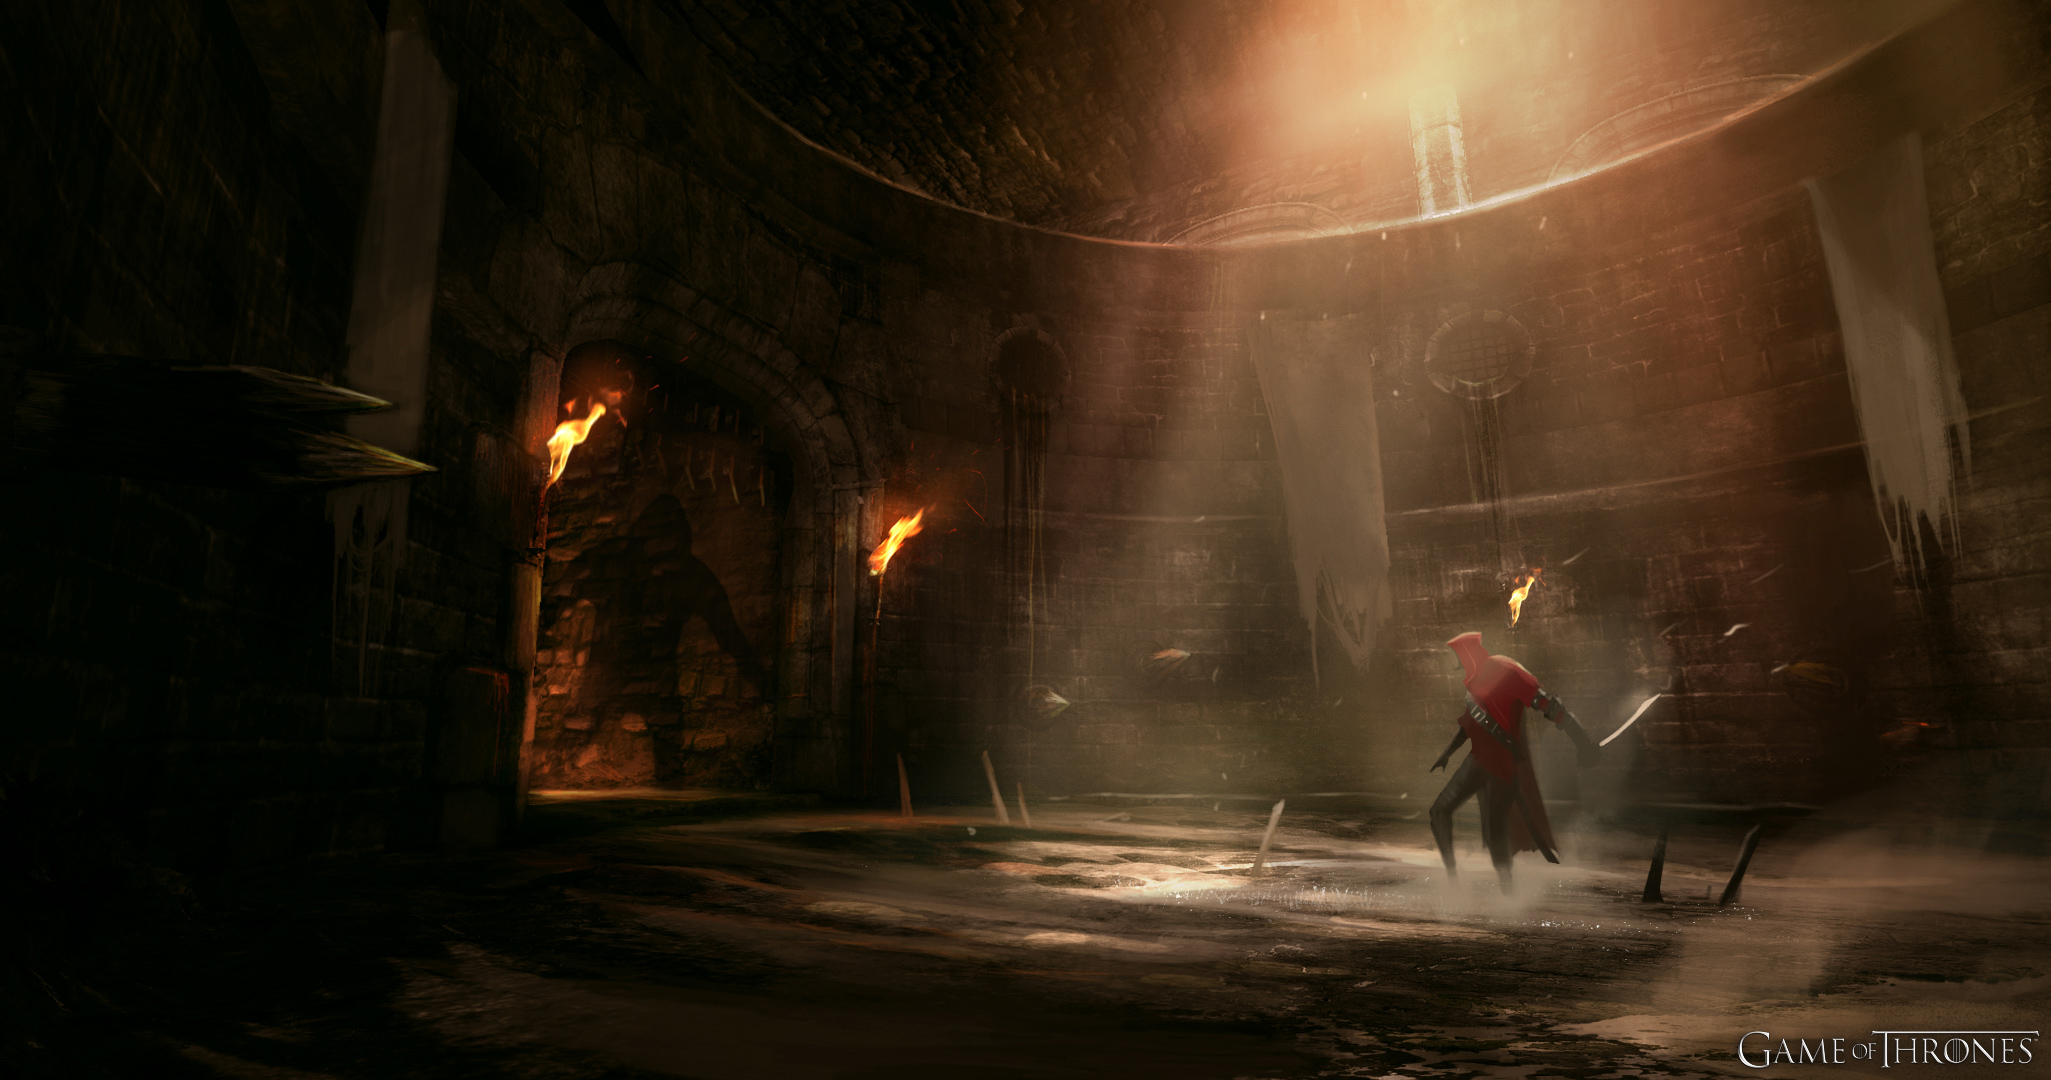 Game of Thrones Game Dungeon HD Wallpaper High Definition HD Games 2051x1080